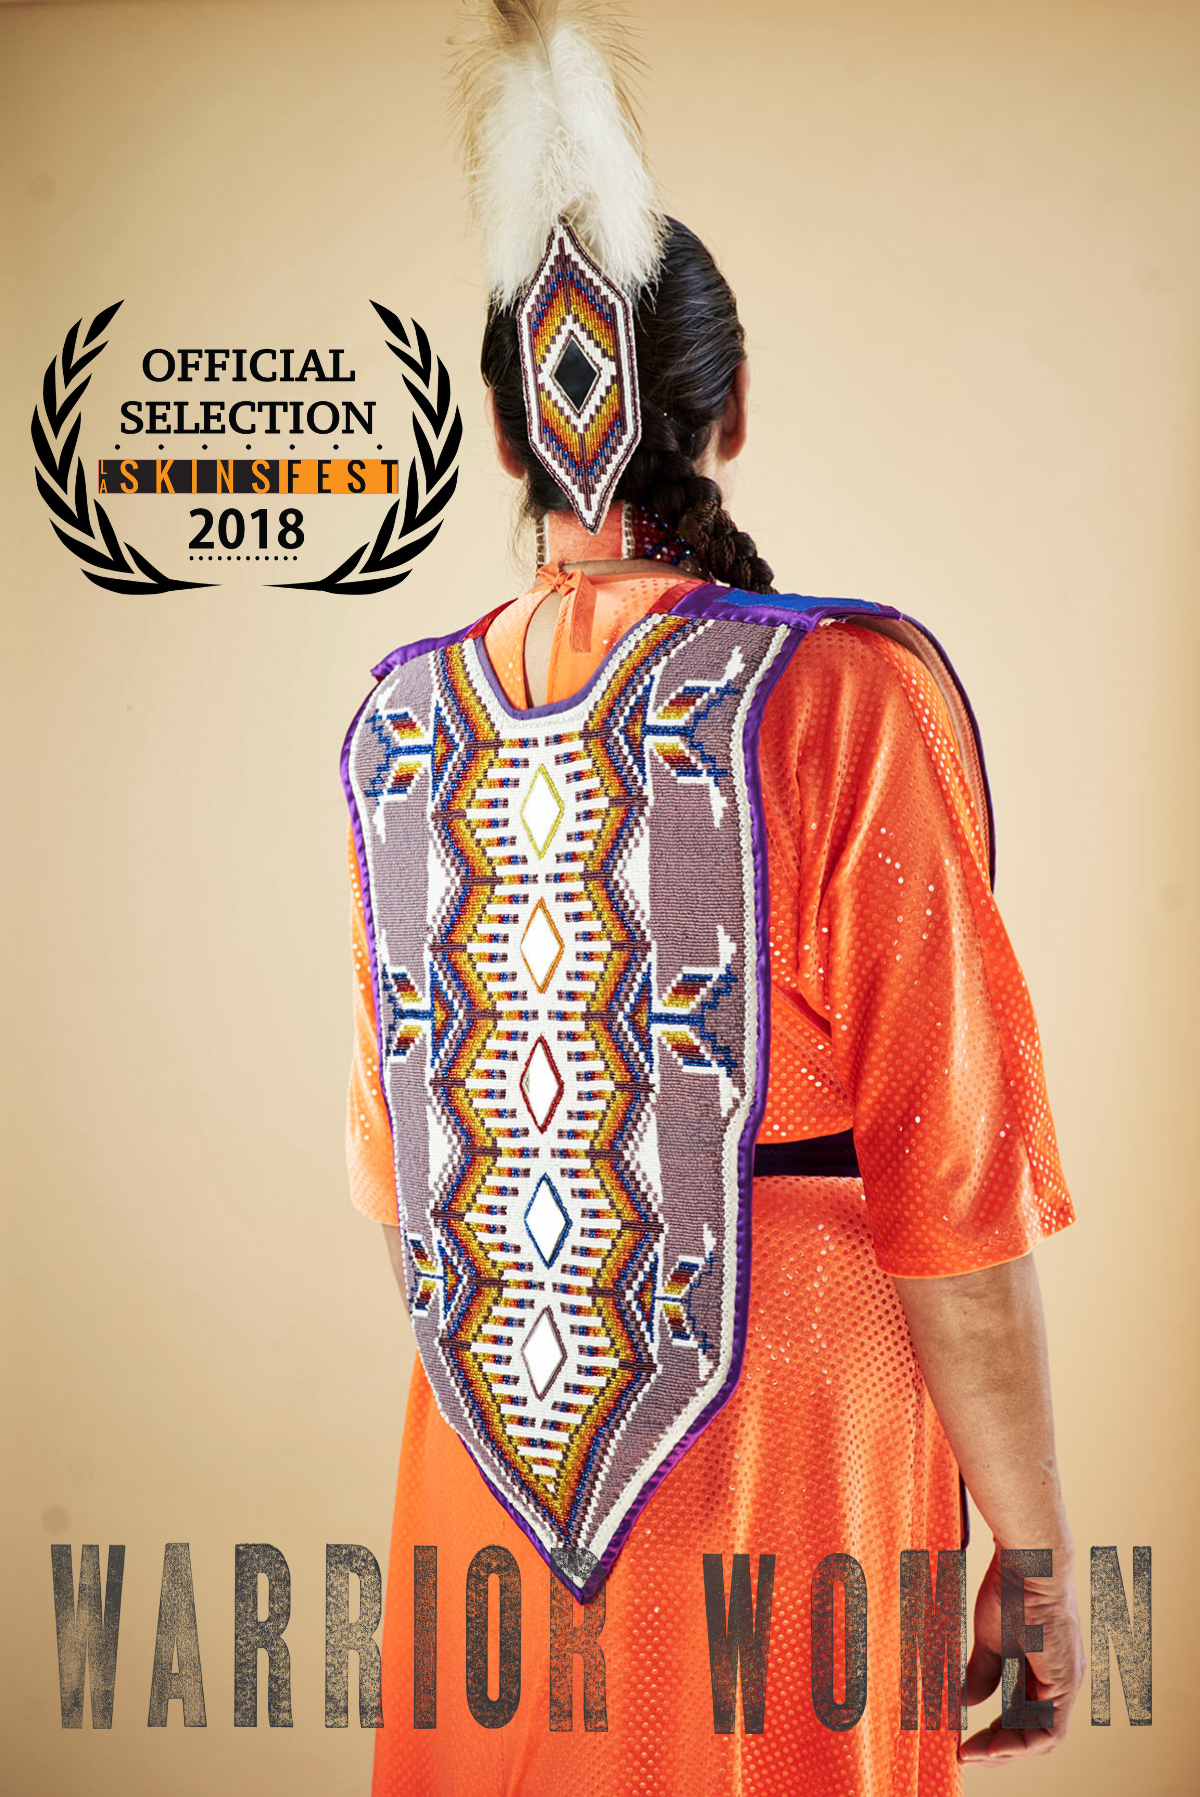 Our Los Angeles premiere takes place at the LA Skins Fest, a Native American film festival that takes place every year as part of the City of Los Angeles Celebration of Native American Heritage Month